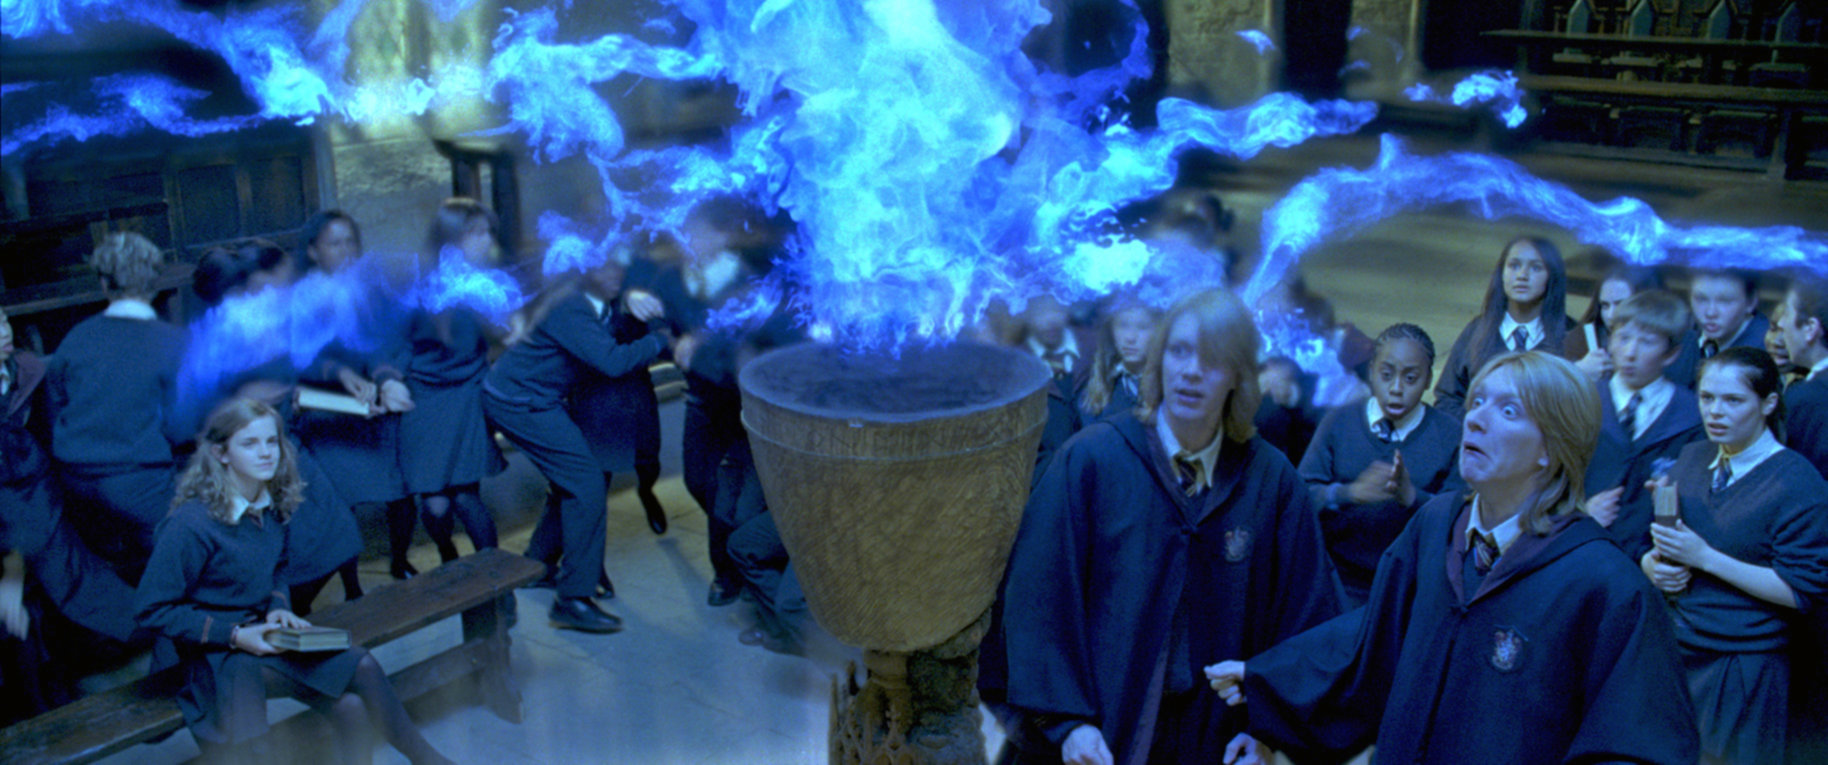 The Goblet of Fire rejects the Weasley twins names.